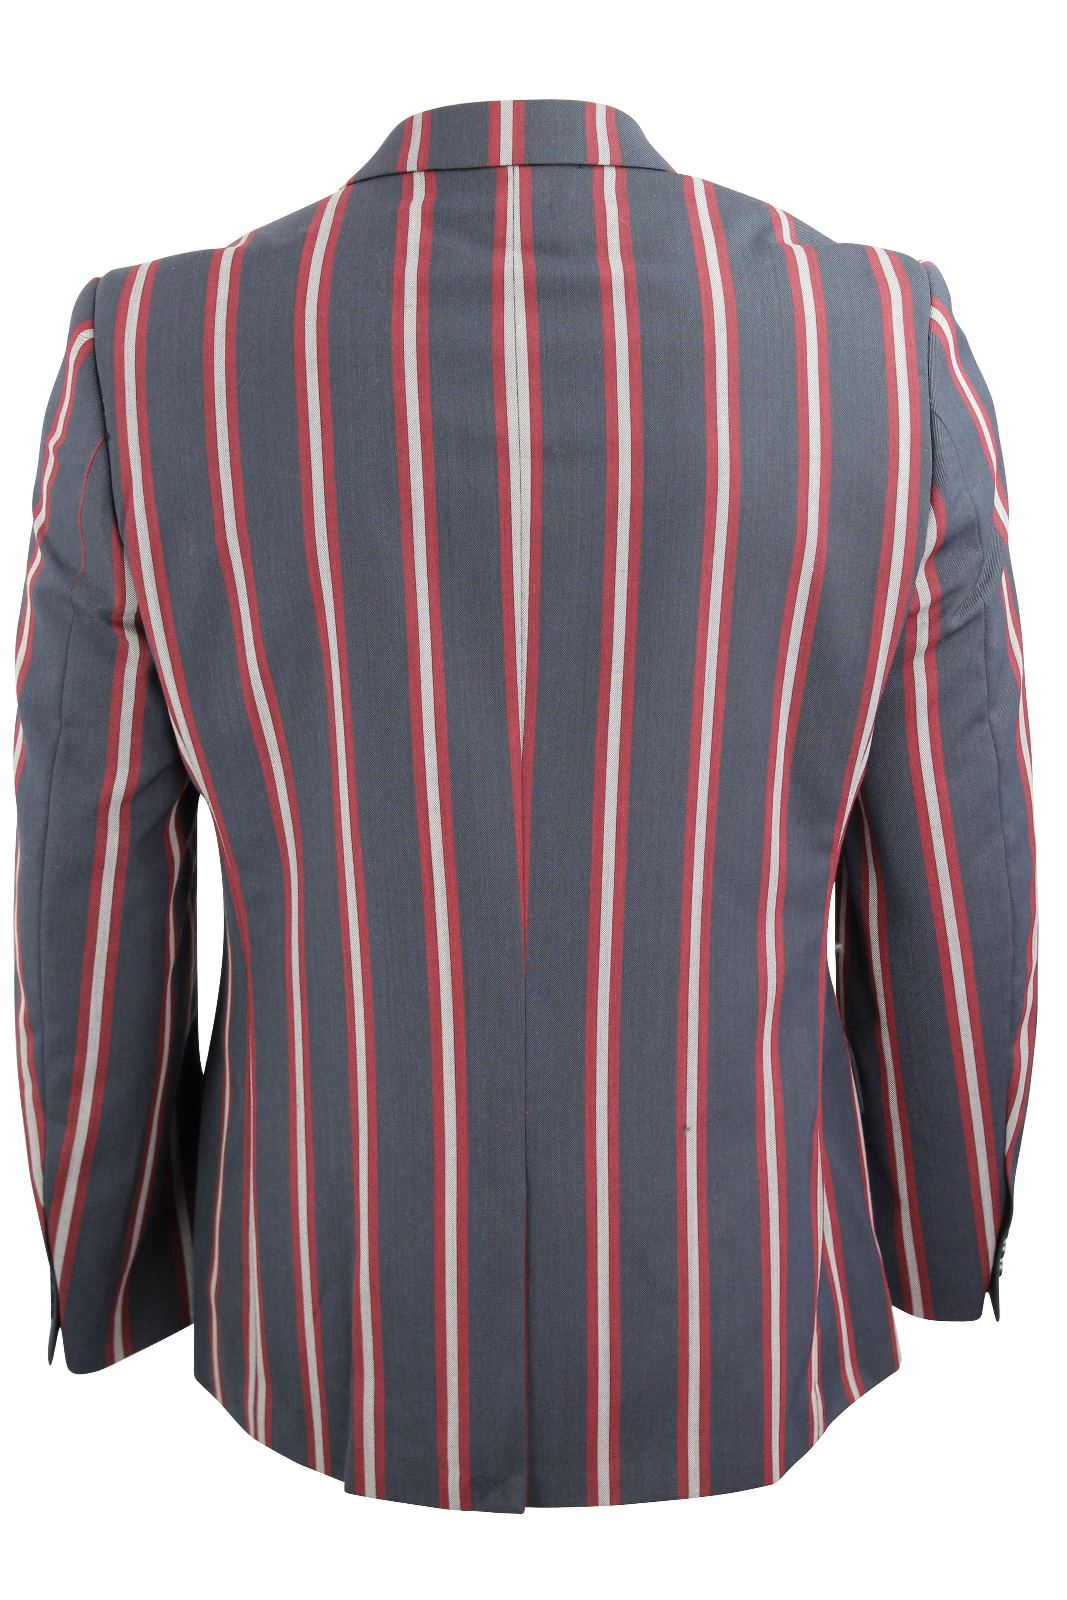 Put a sophisticated spin on your laid-back look with the crisp seersucker fabric and stylish stripes of this blazer from Kenneth Cole New York.